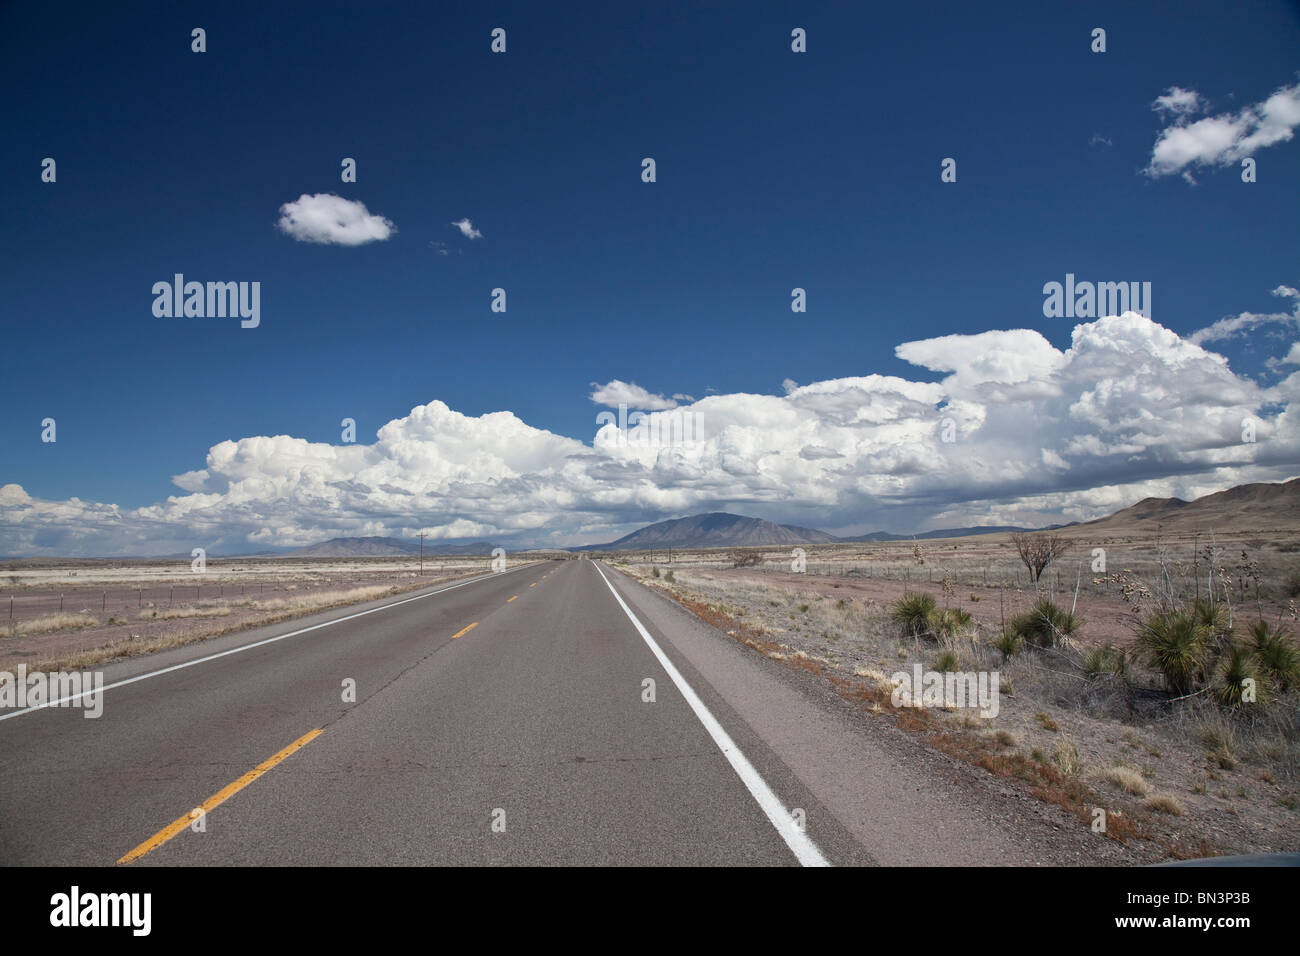 Country road, New Mexico, USA, vanishing point - Stock Image